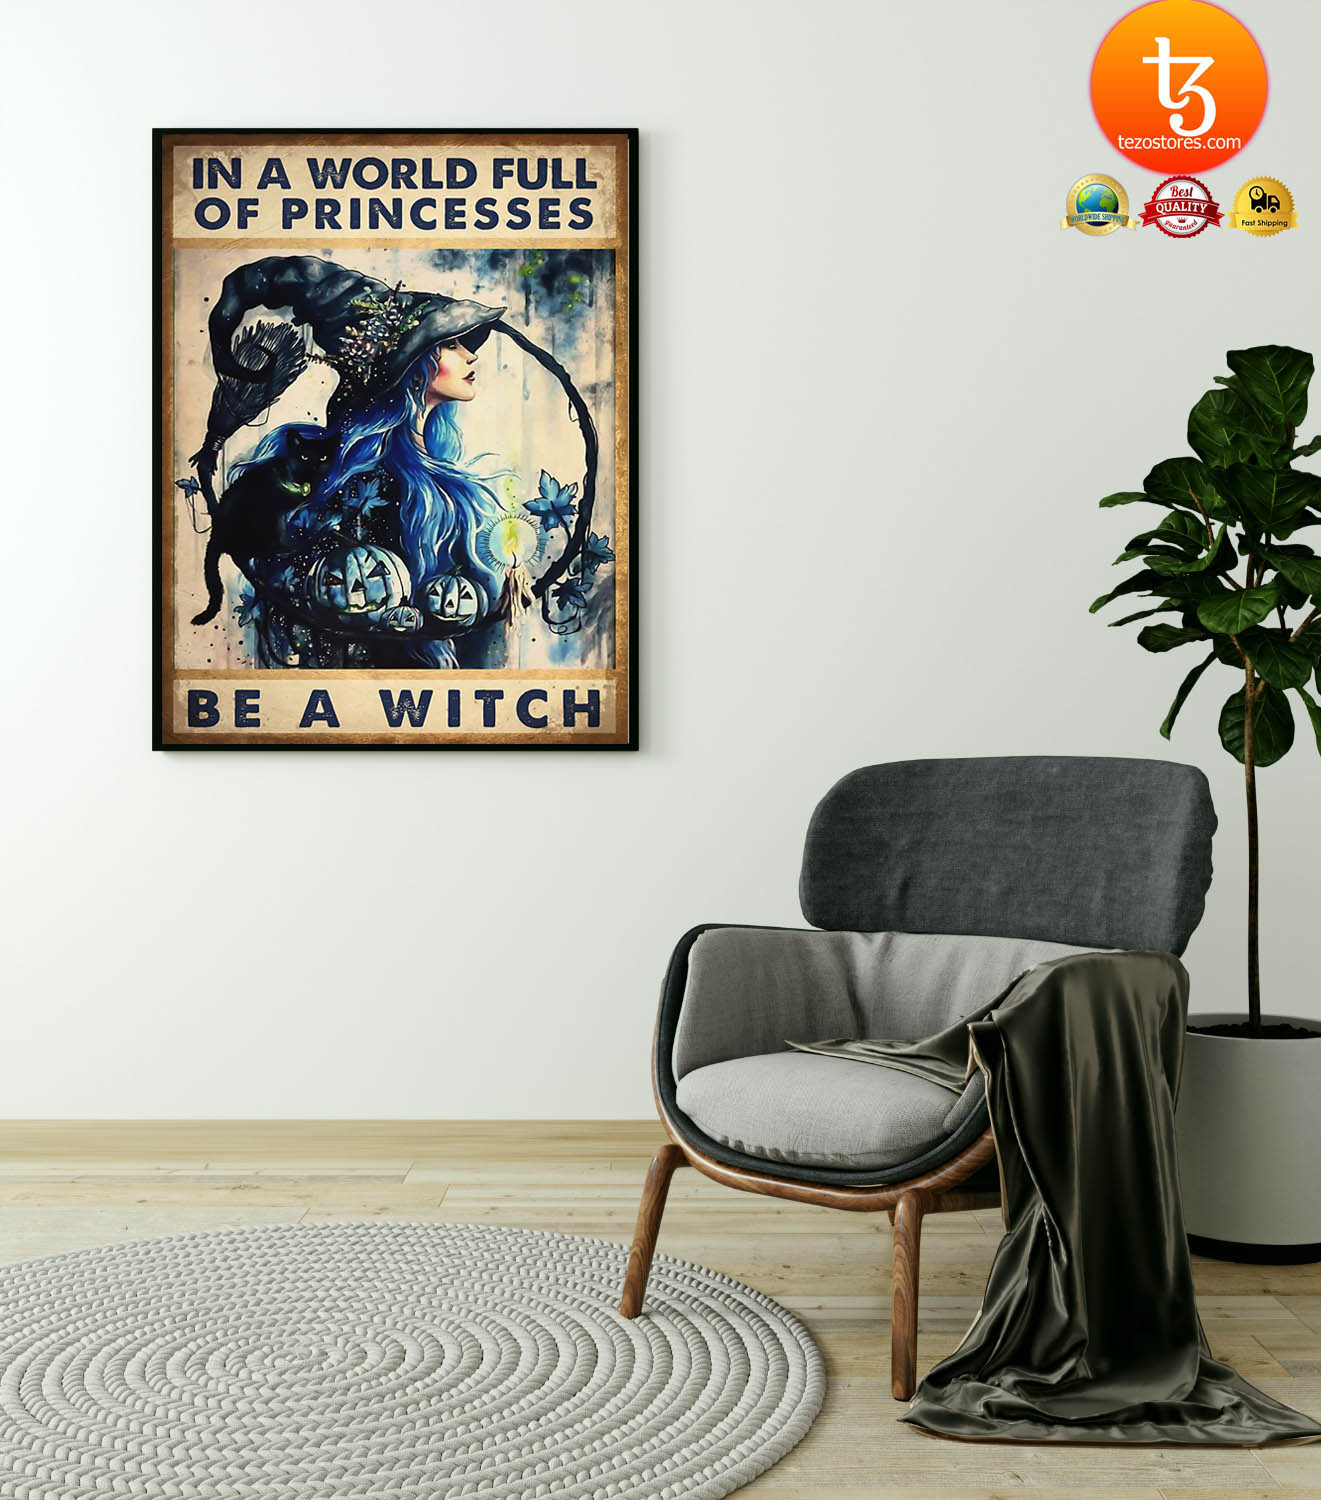 In a world full of princesses be a witch poster 23